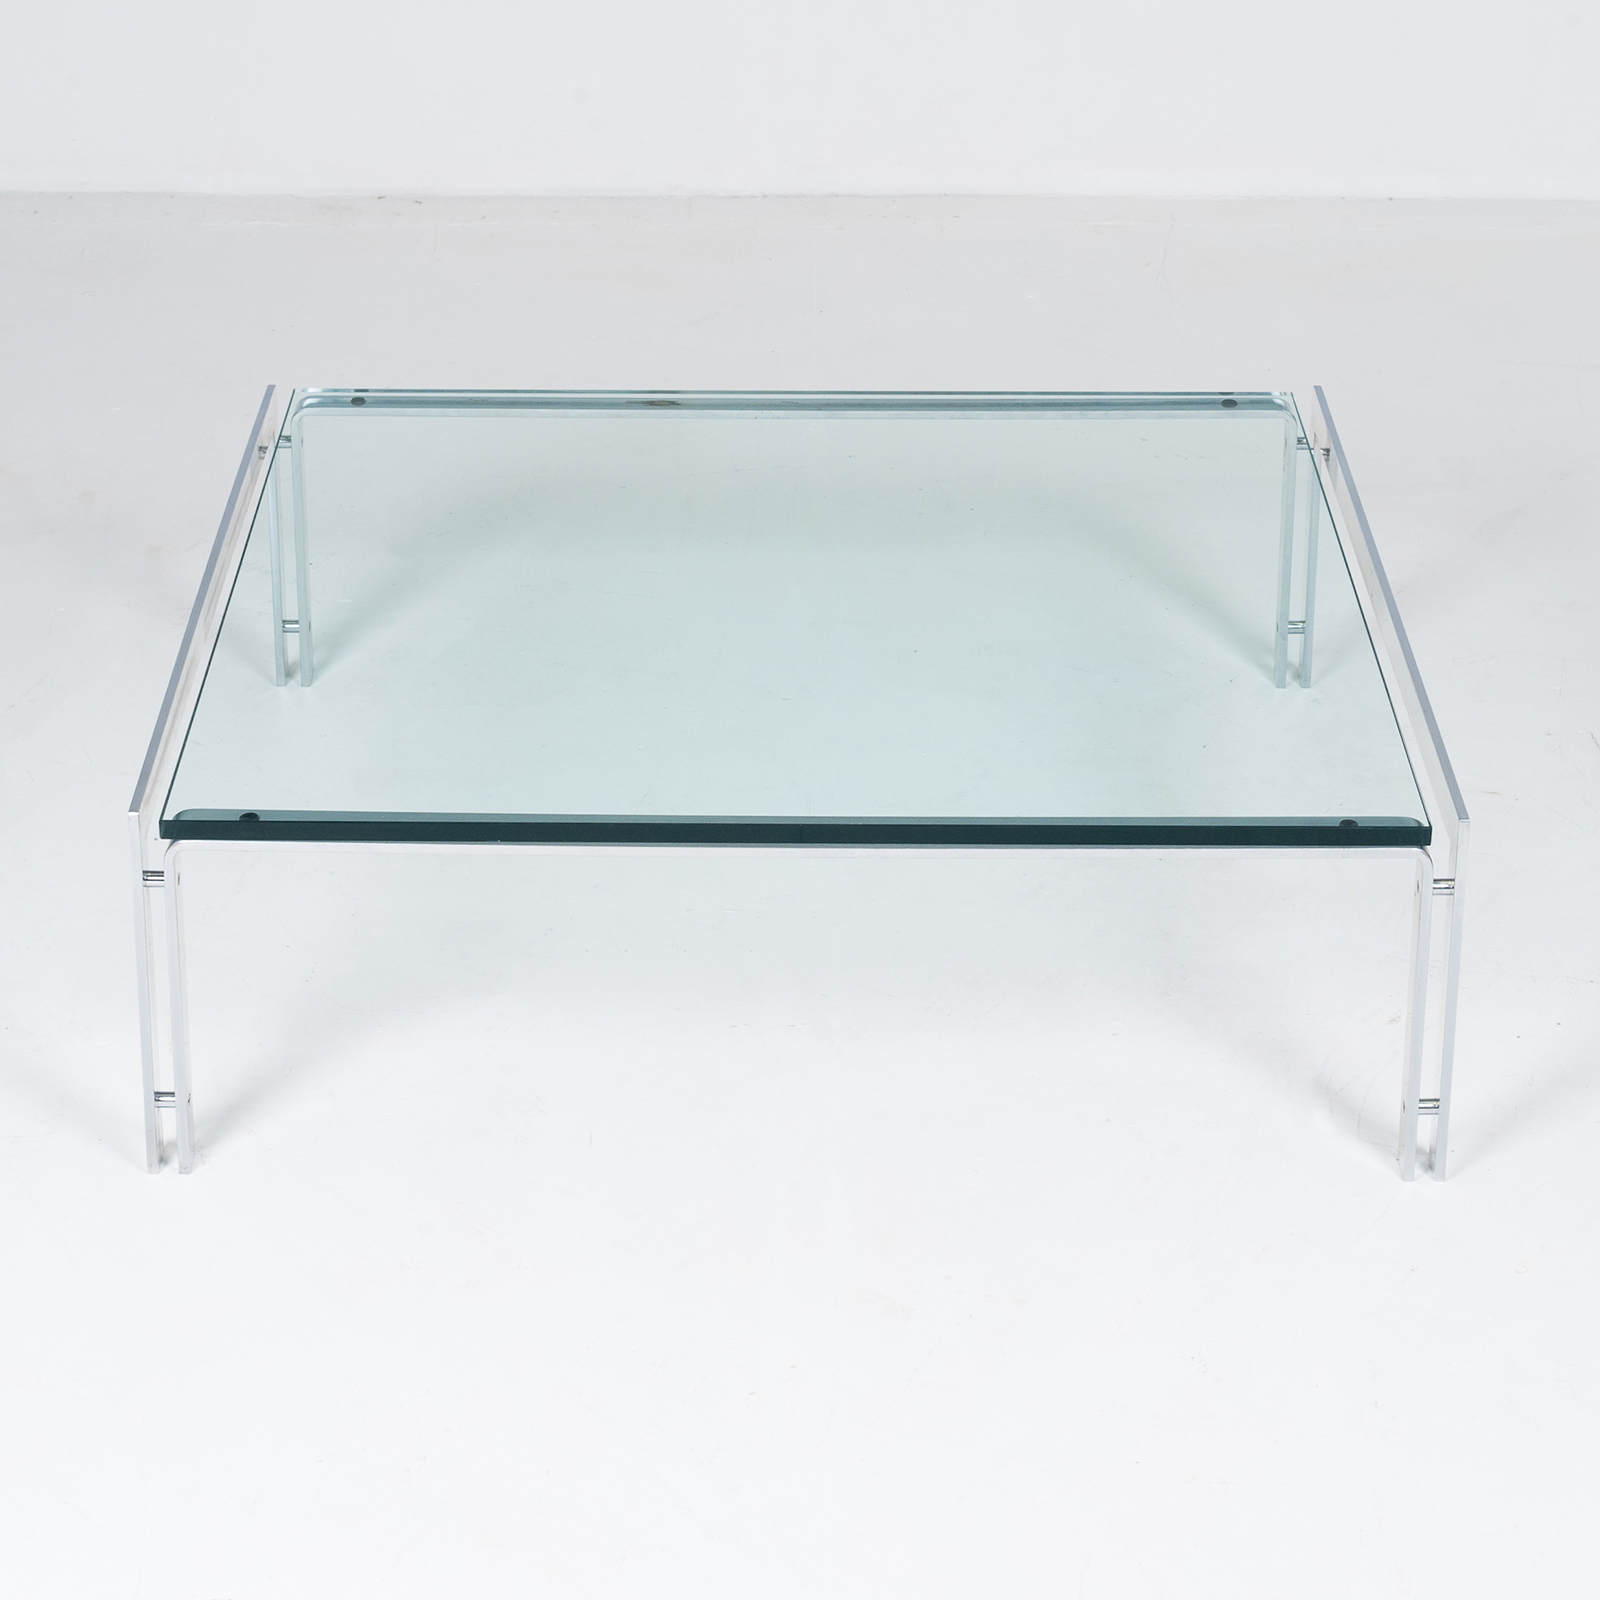 Coffee Table By Metaform In Glass And Chrome, 1970s, The Netherlands57